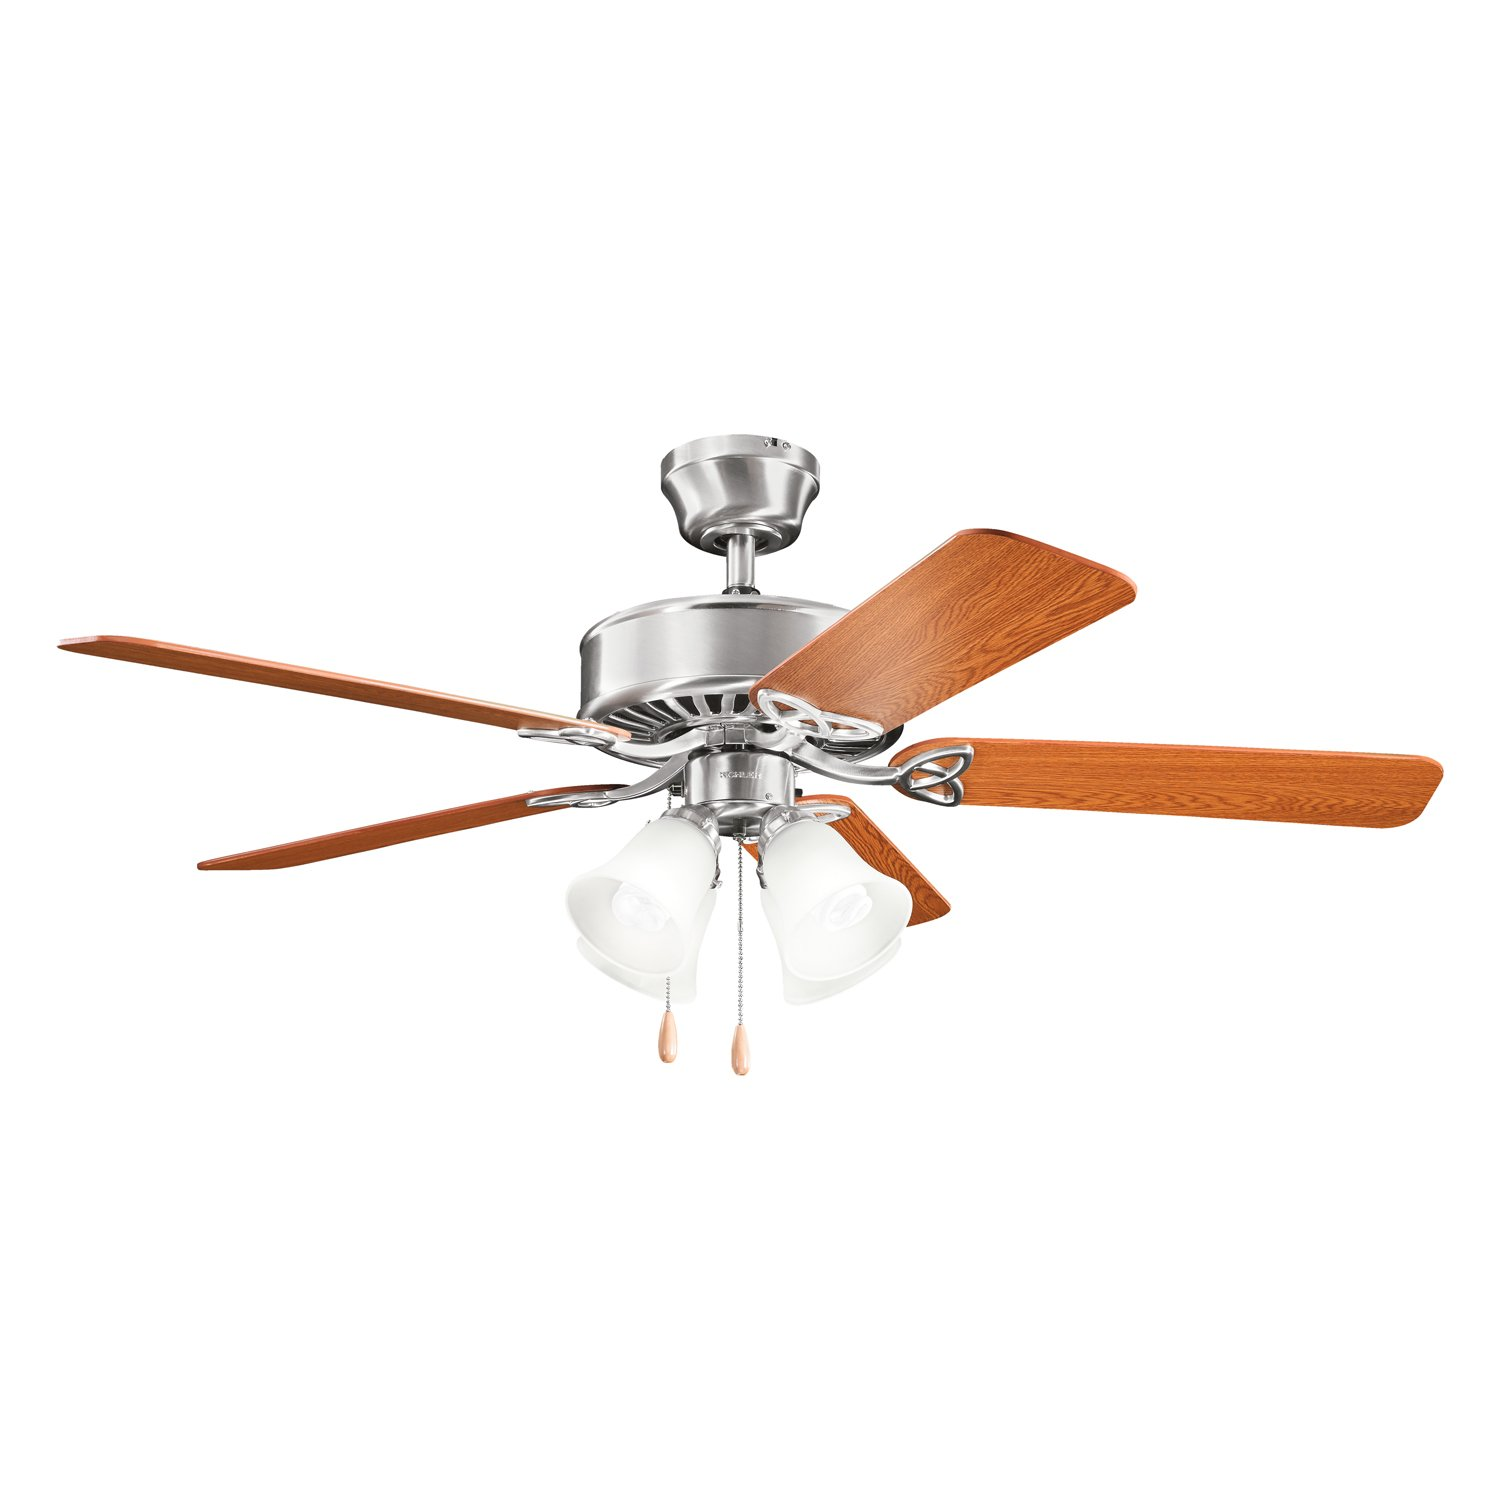 Kichler 339240BSS, Renew Premier Brushed Stainless Steel 50 Ceiling Fan with Light